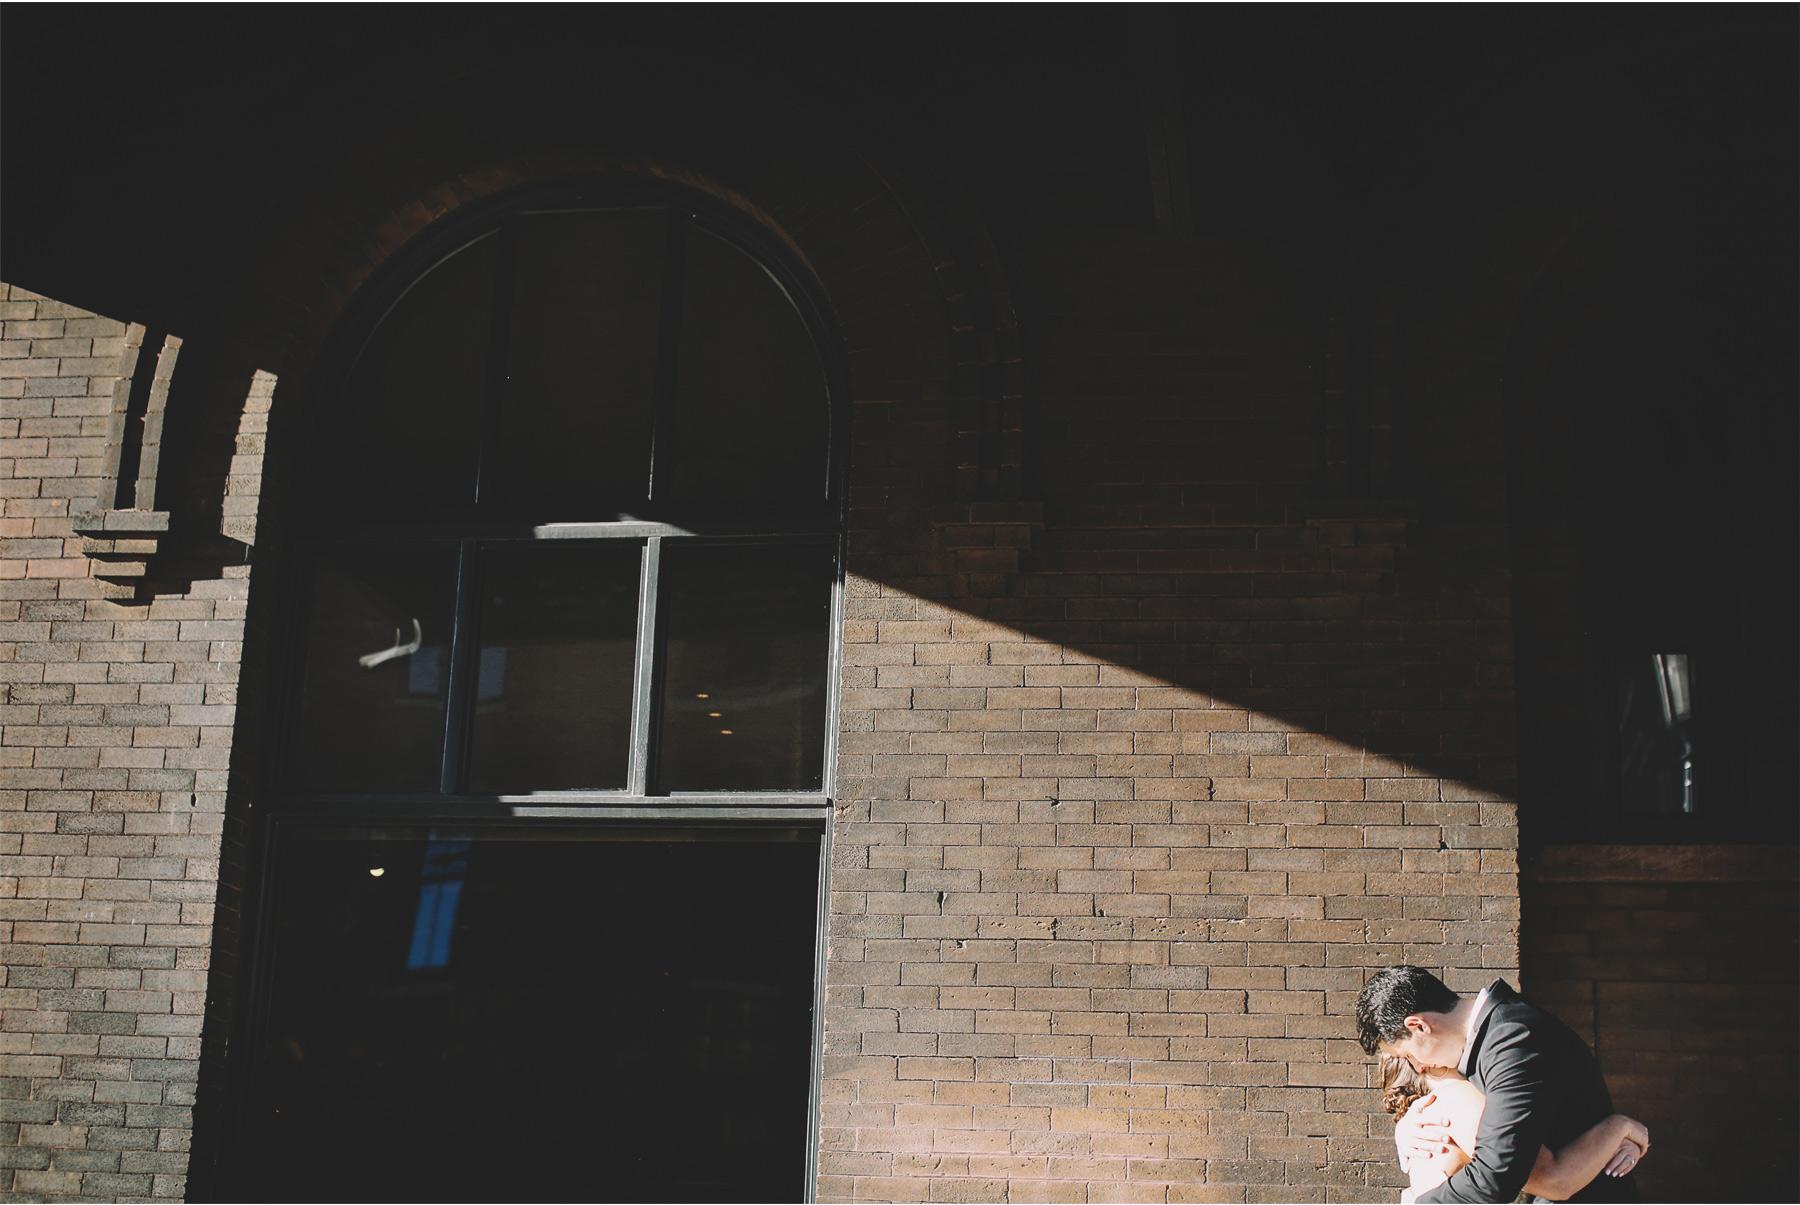 05-Minneapolis-Minnesota-Wedding-Photographer-Vick-Photography-First-Look-Downtown-Carrie-and-August.jpg